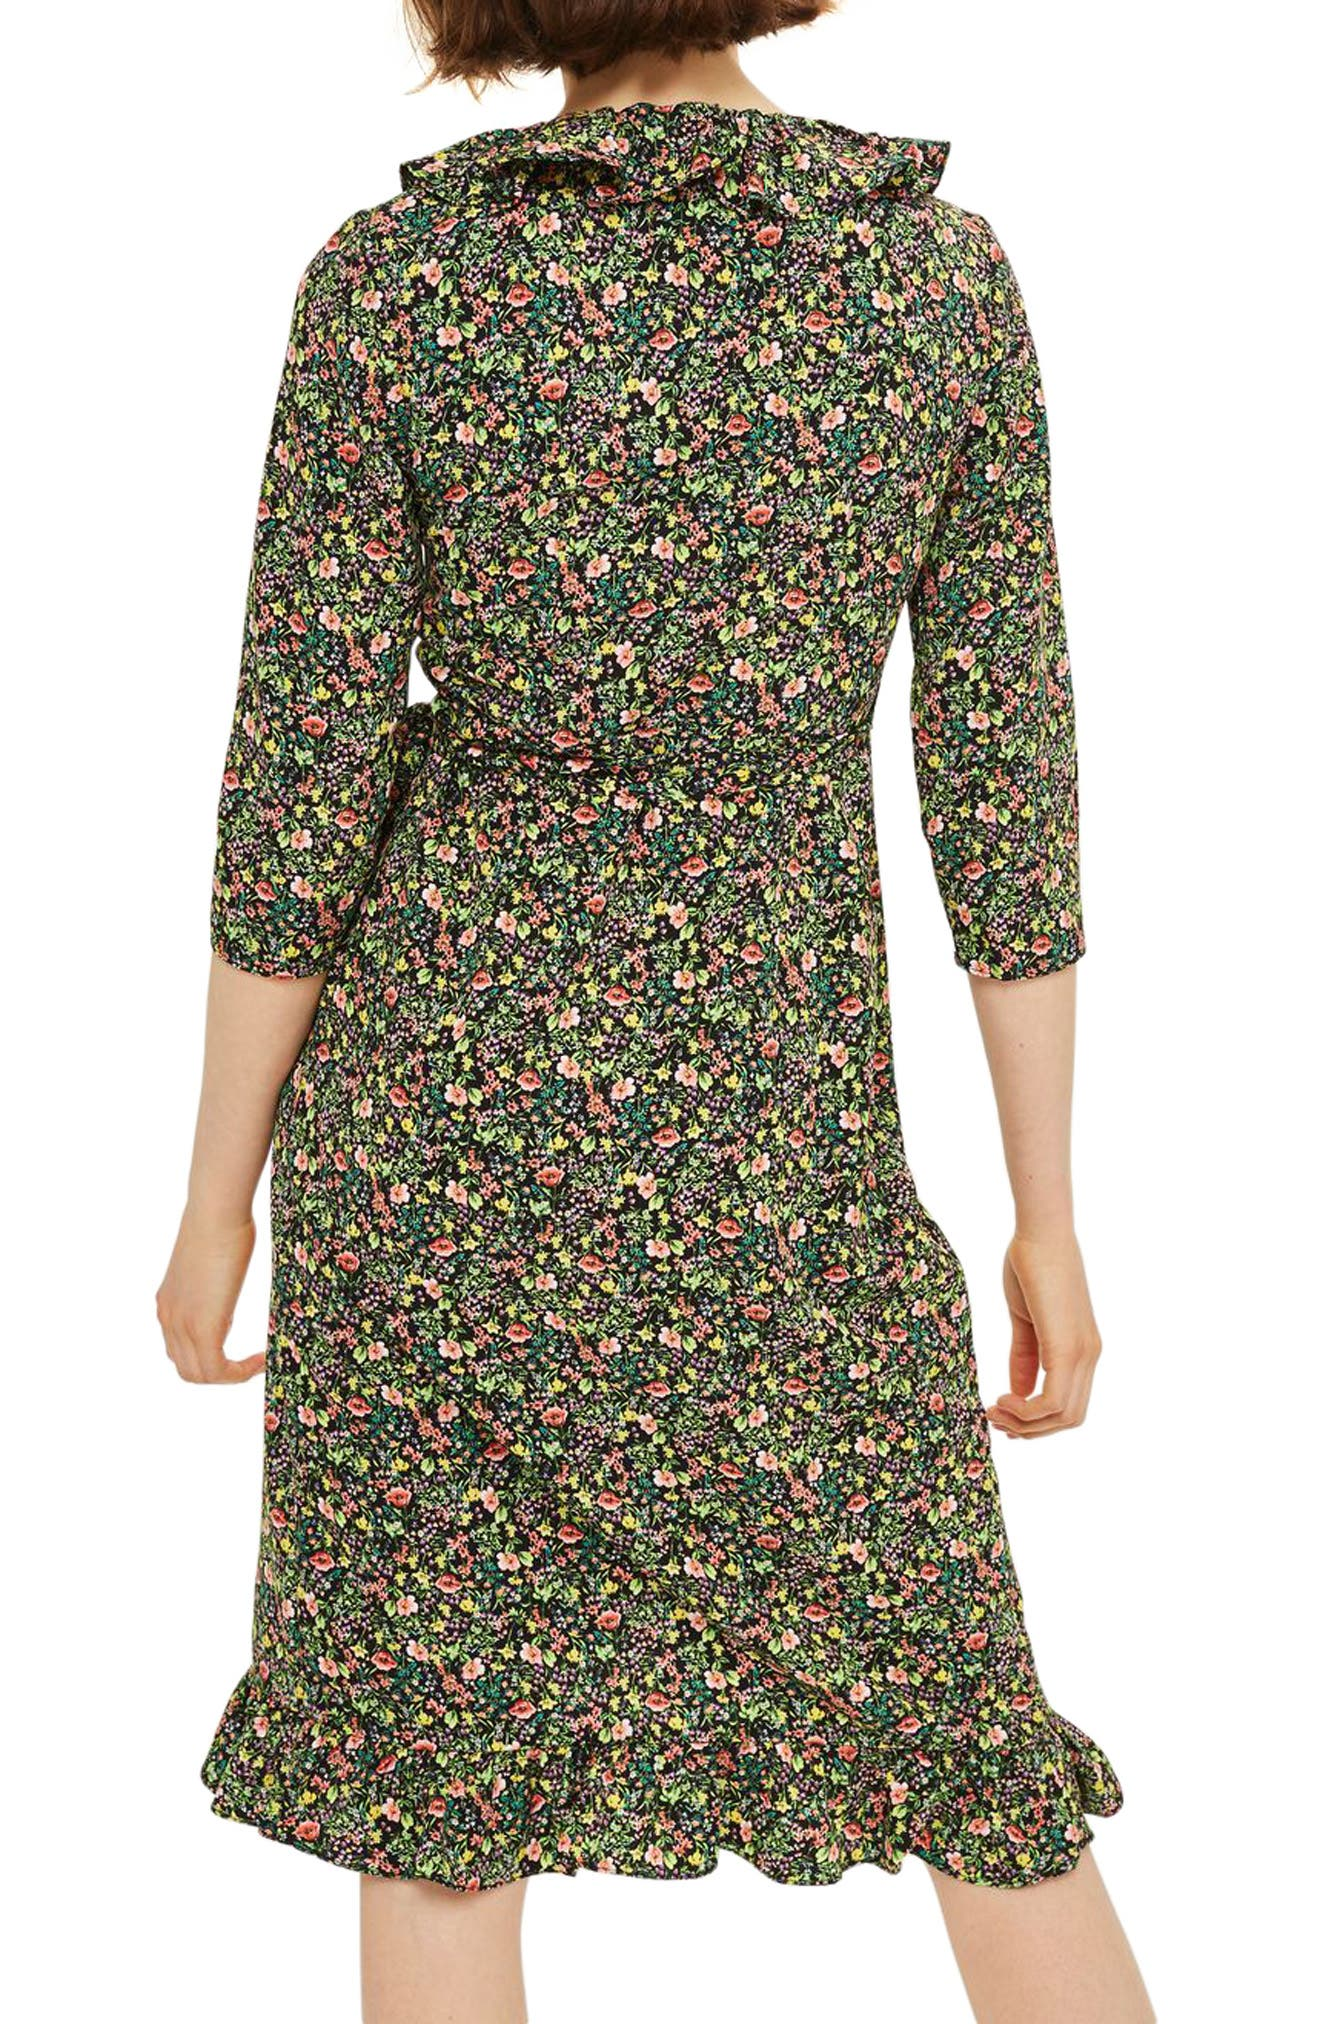 TOPSHOP, Flower Garden Ruffle Wrap Dress, Alternate thumbnail 2, color, 001